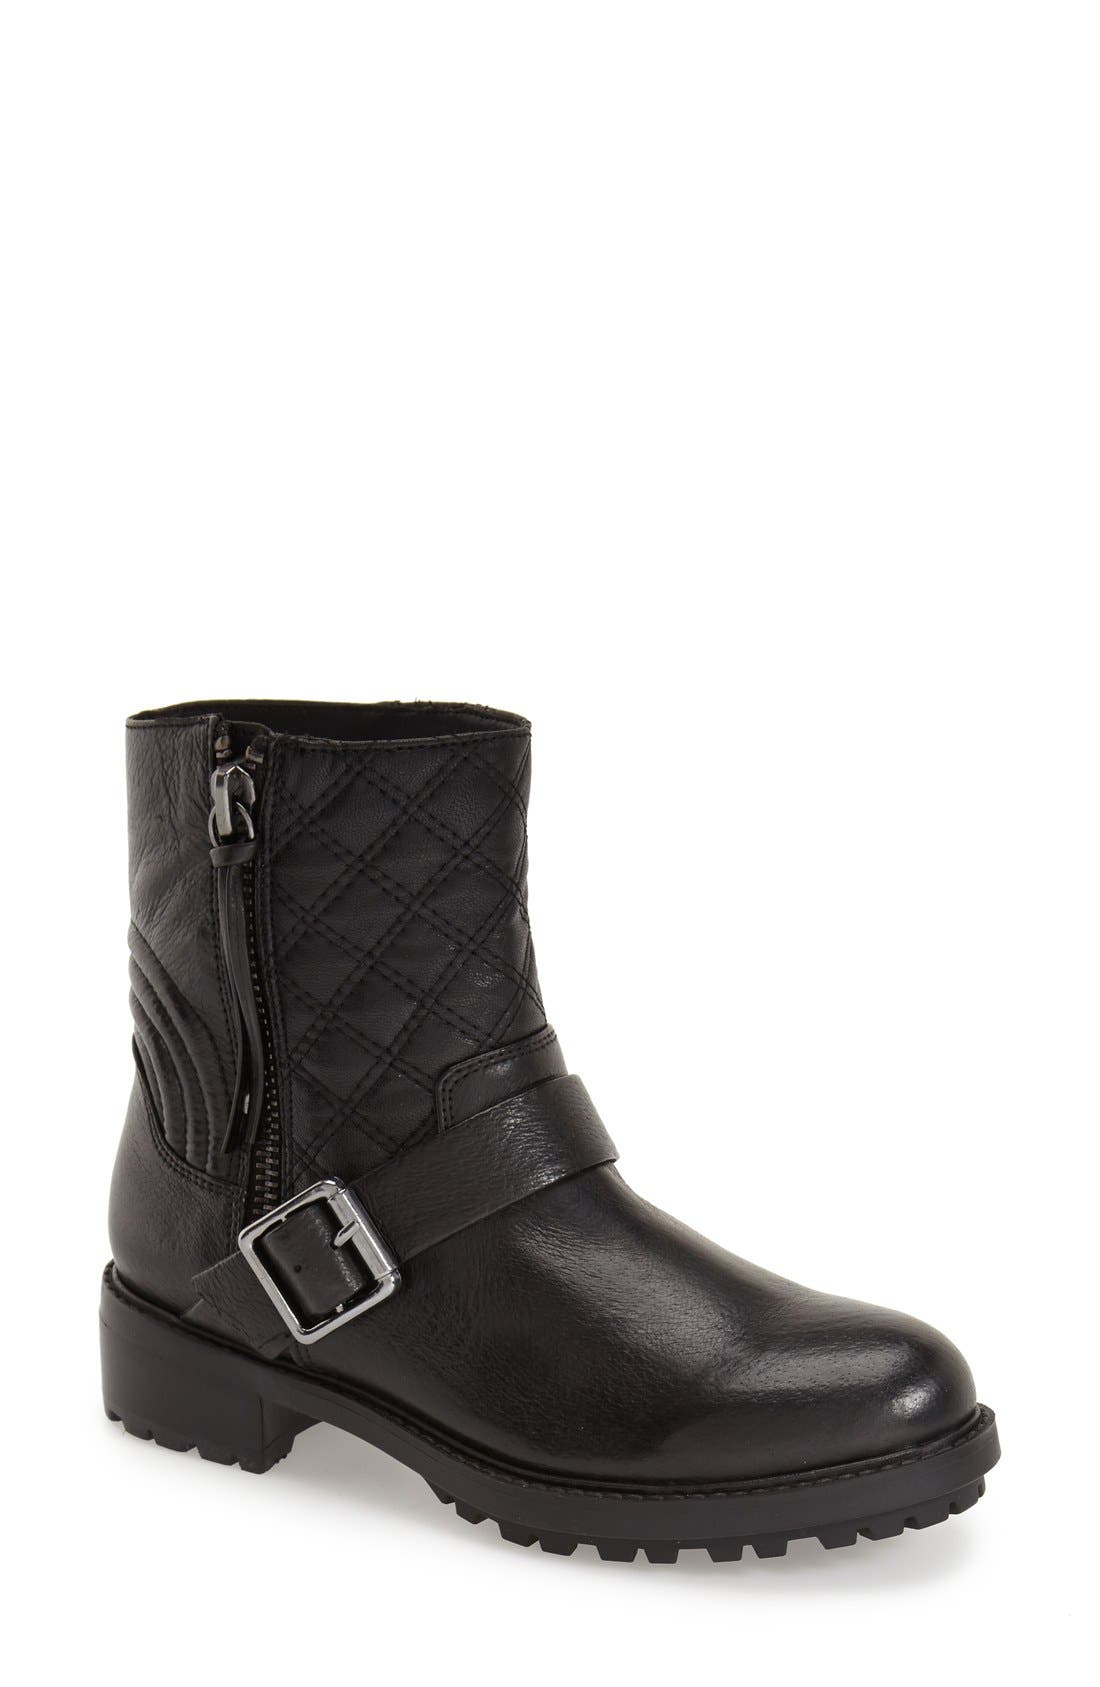 Main Image - Steve Madden 'Rivalree' Moto Boot (Women) (Special Purchase)